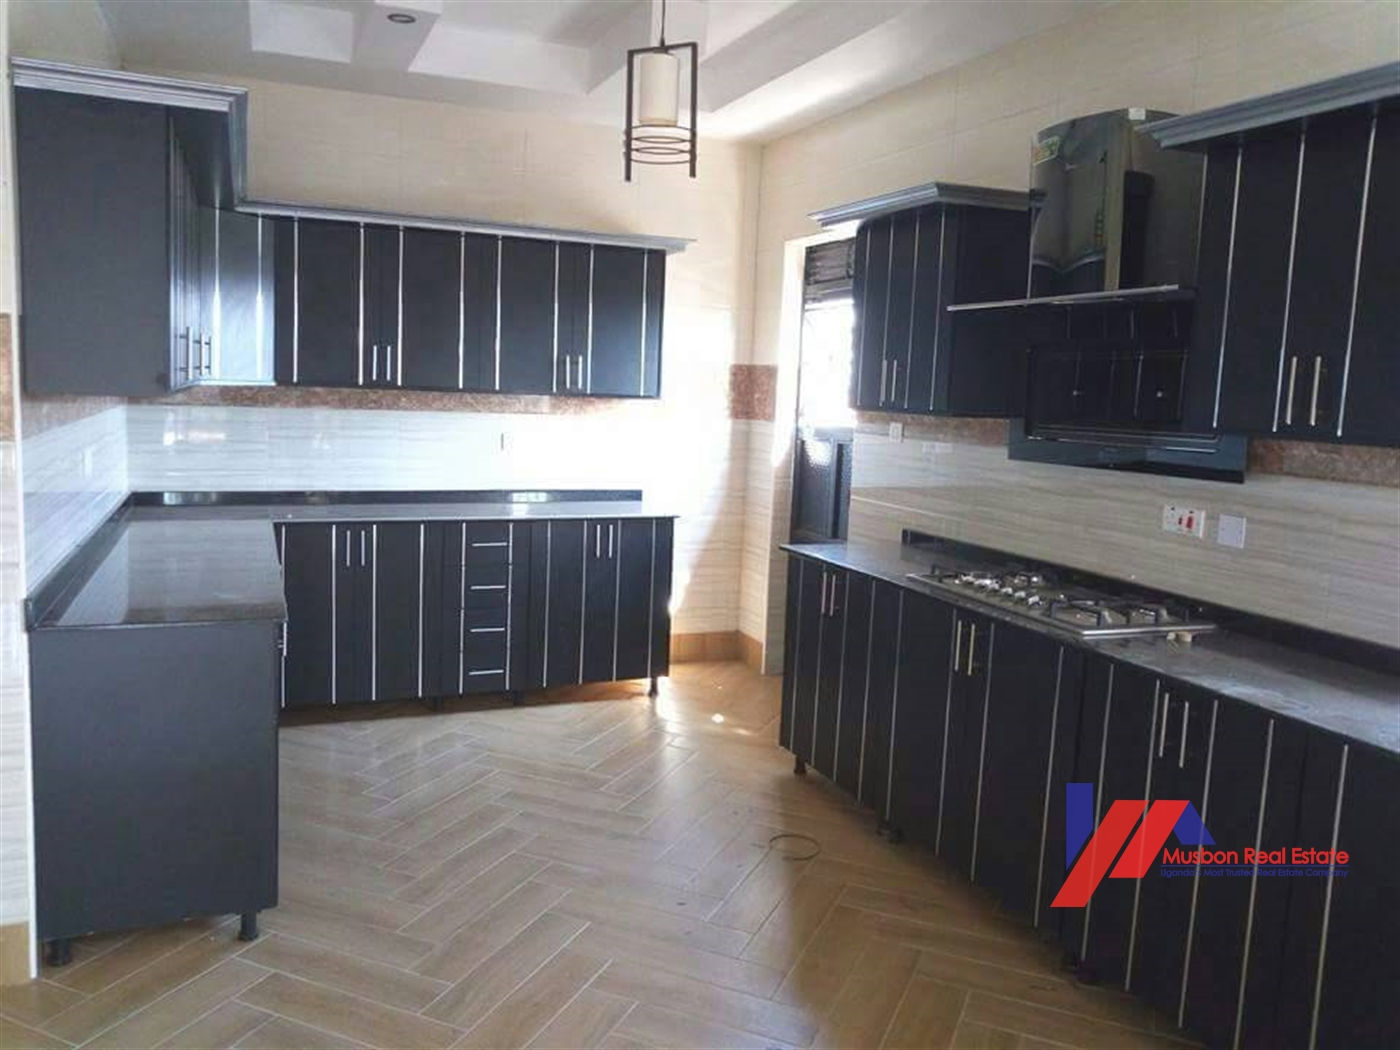 Town House for sale in Ntinda Kampala